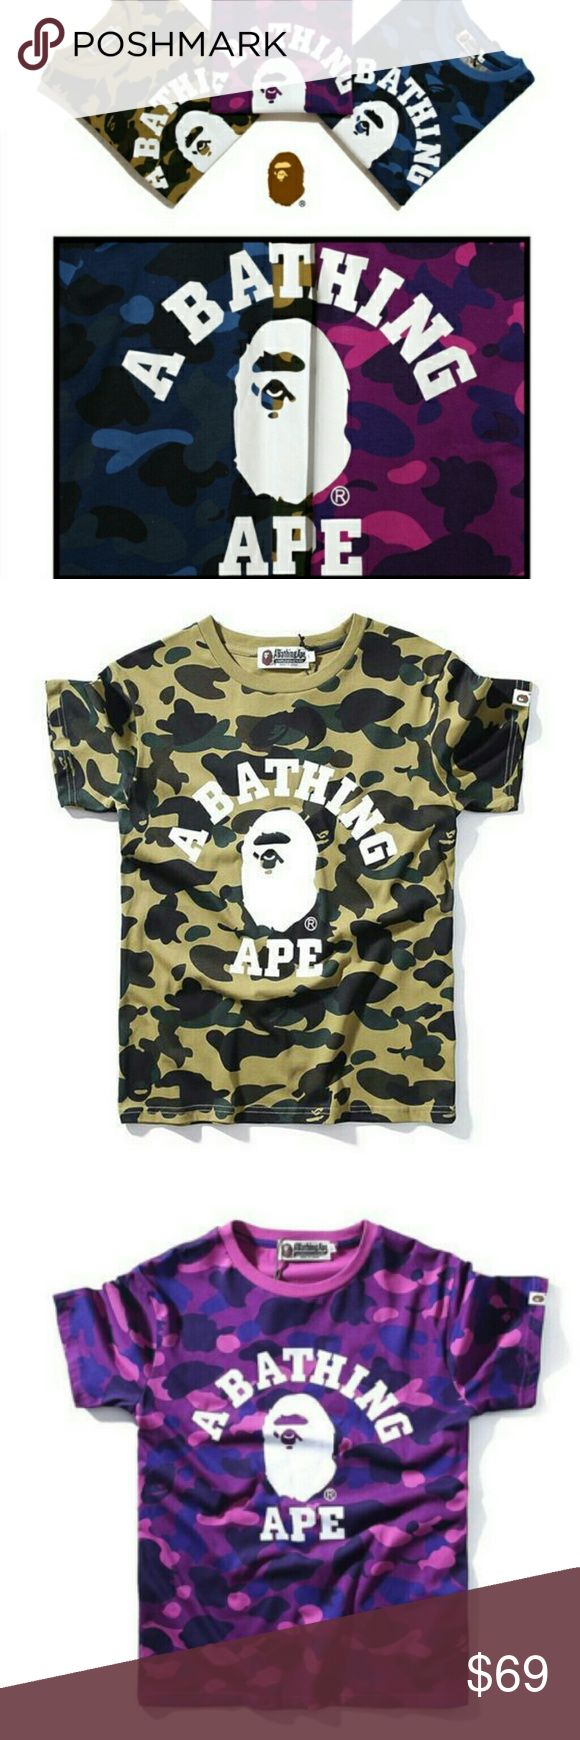 Ape Bape Shirt Bathing Camo  Tee Head Material: Cotton  Shipping: 100% Free WorldWide Shipping. Please, contact me, if you want buy my item.  Tags:Supreme Hoodie Logo Box Size Hooded Sweatshirt Black Xl S L Tee Black White Gold Guess ASAP Michael Jackson Palace Ferg Skateboards Undercover Shirt Fw16 Seven Samurai Anatomy Comme Des Garcons Cdg Play Heart Hanes Camo Givenchy Rottweiler Shark Elephant a bathing ape bape the north face rare kanye west yeezy air max 98 flex off white stone island…